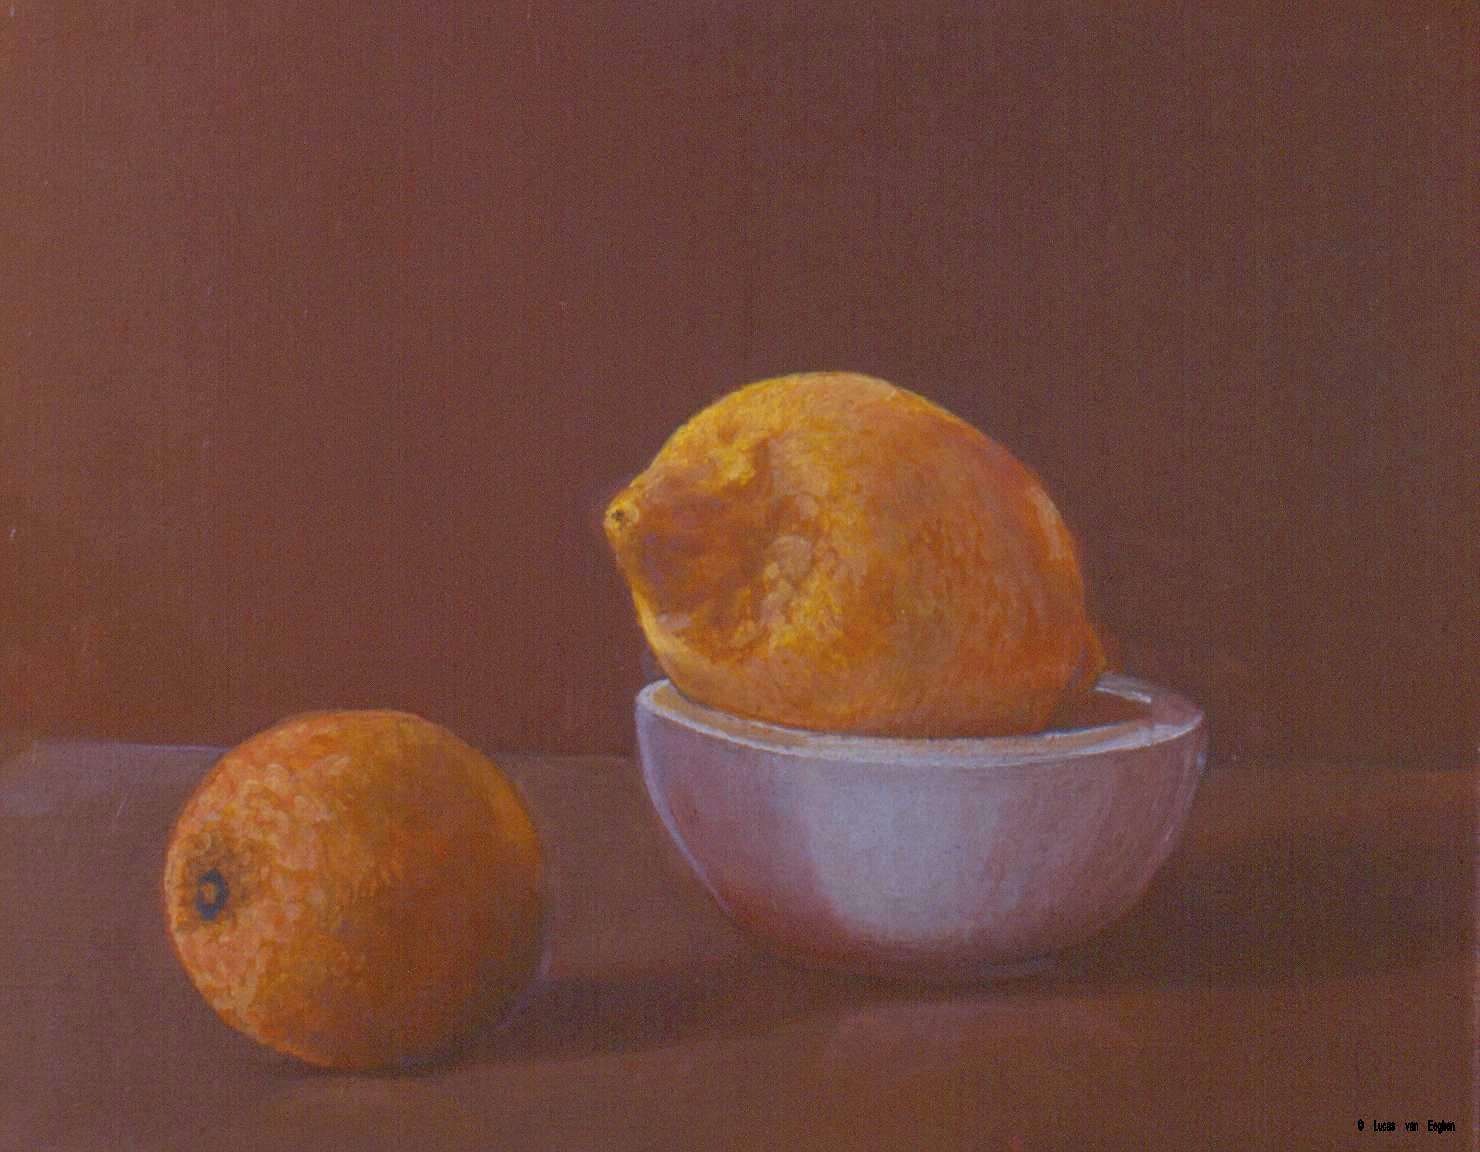 lemon & orange, Lucas van Eeghen Copyright � 2004